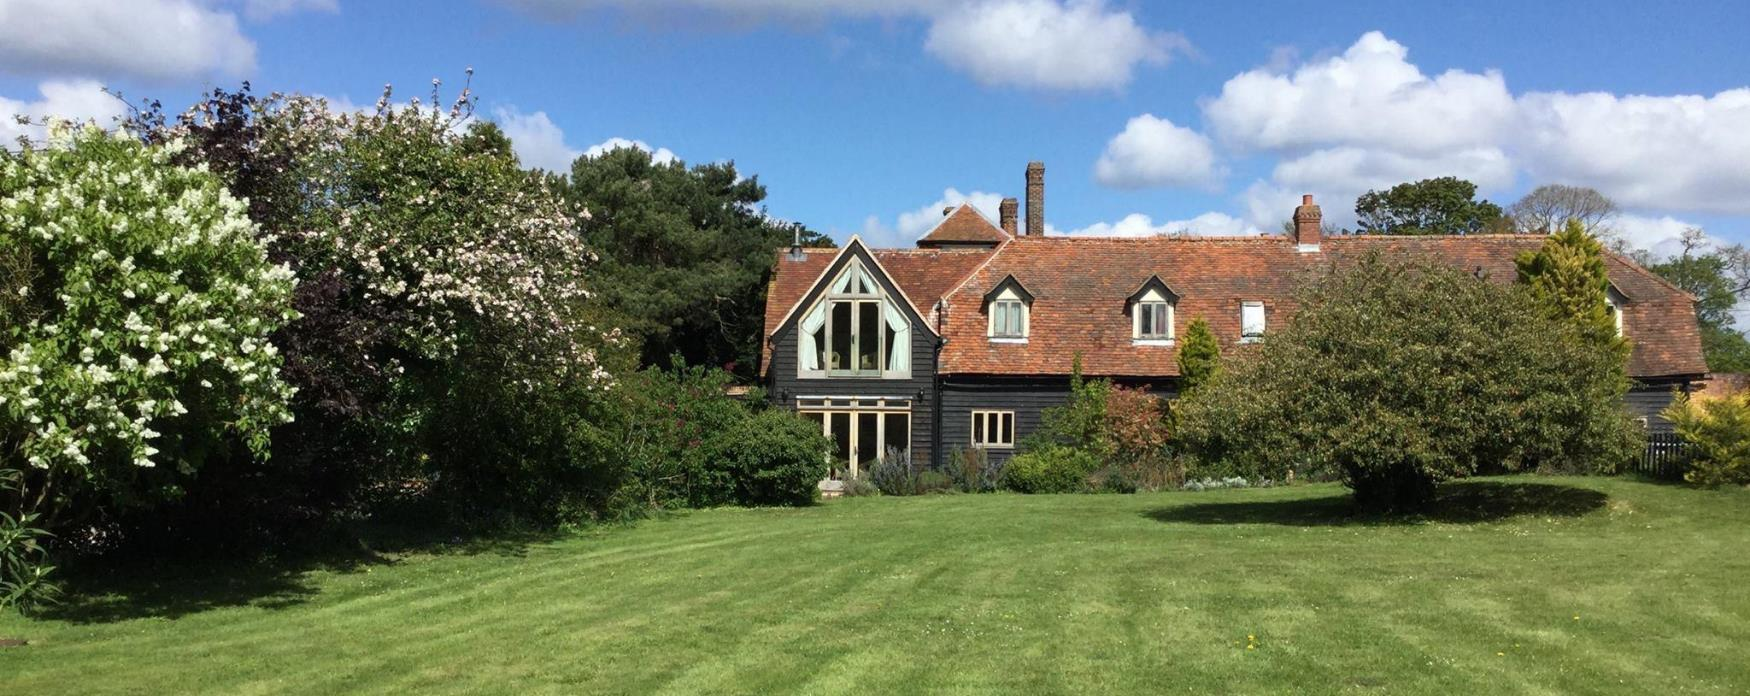 Six Apples Accommodation in Essex